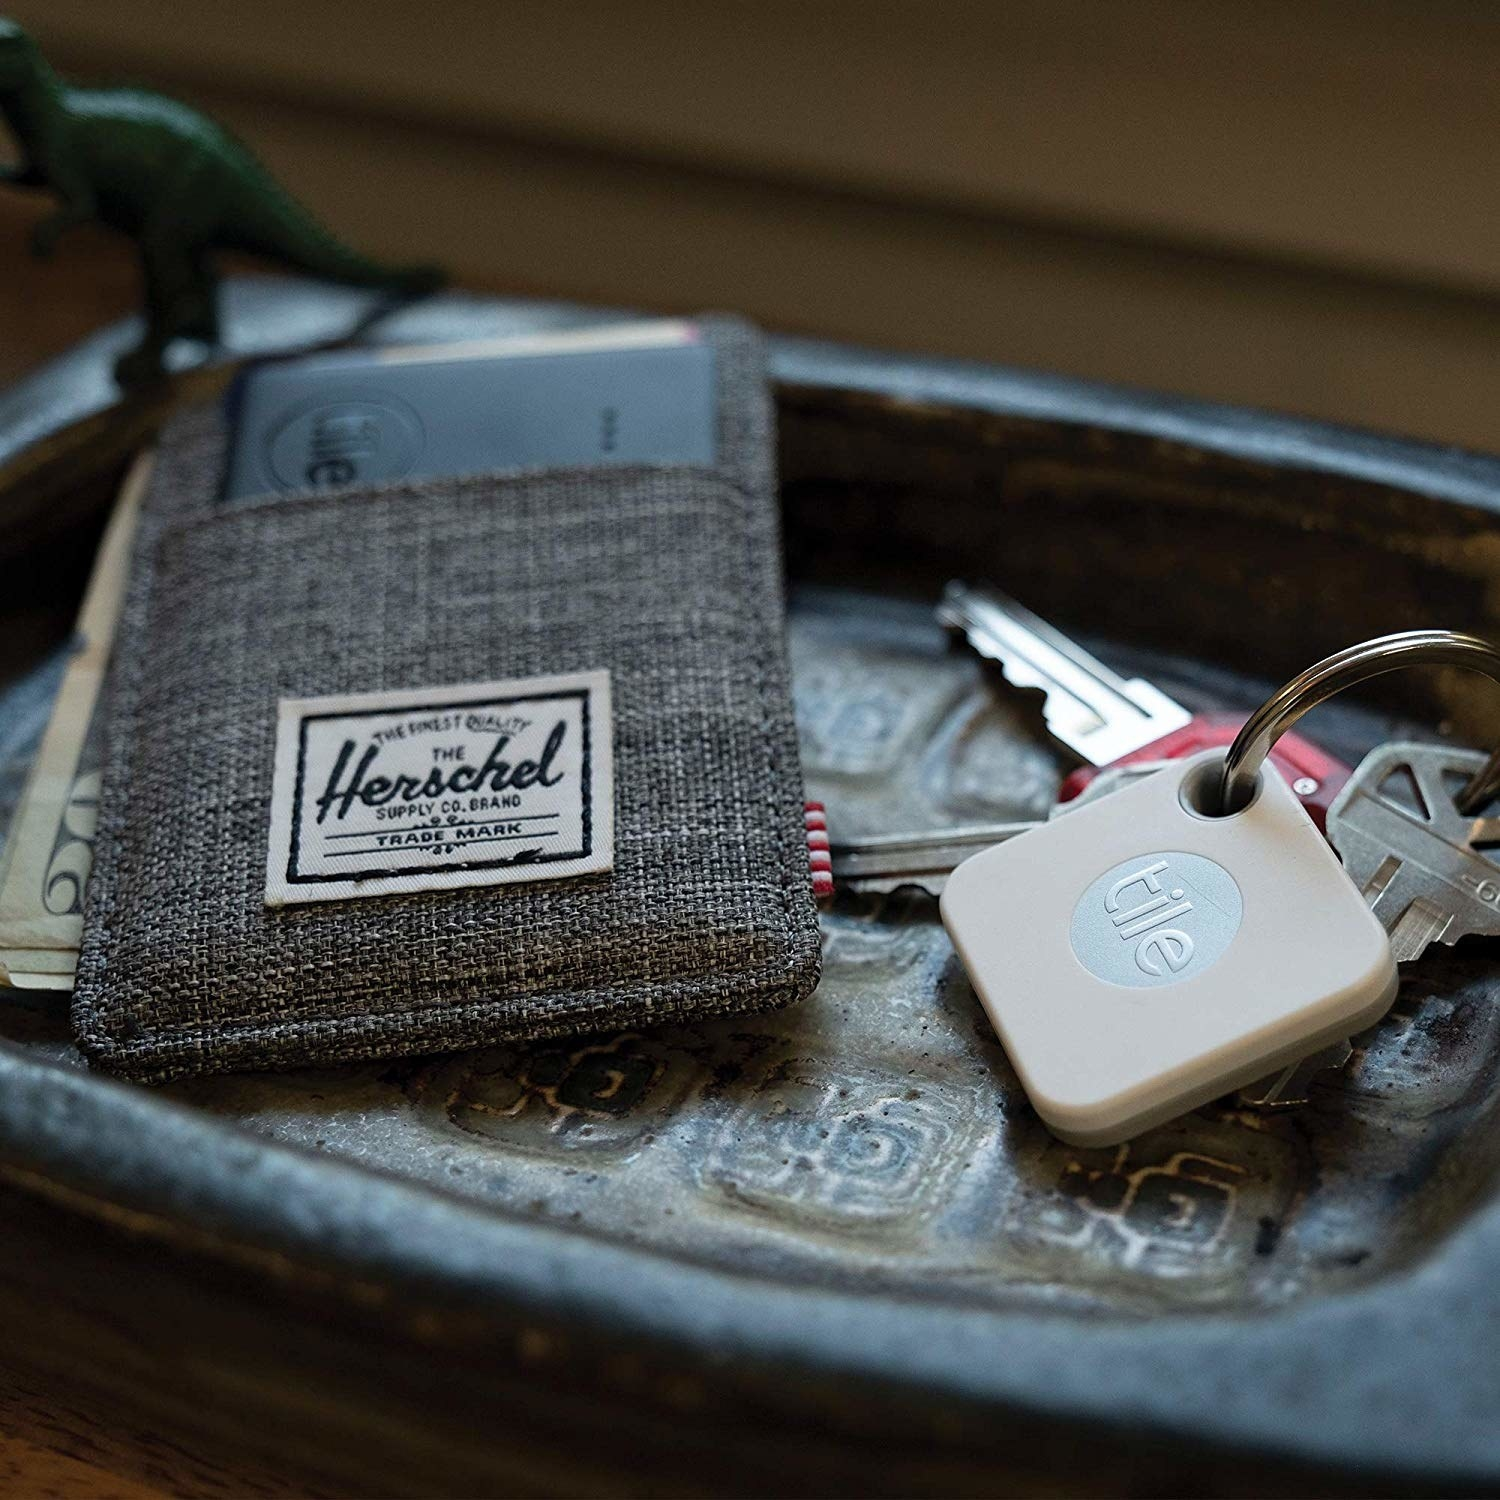 The square tracker on a keyring